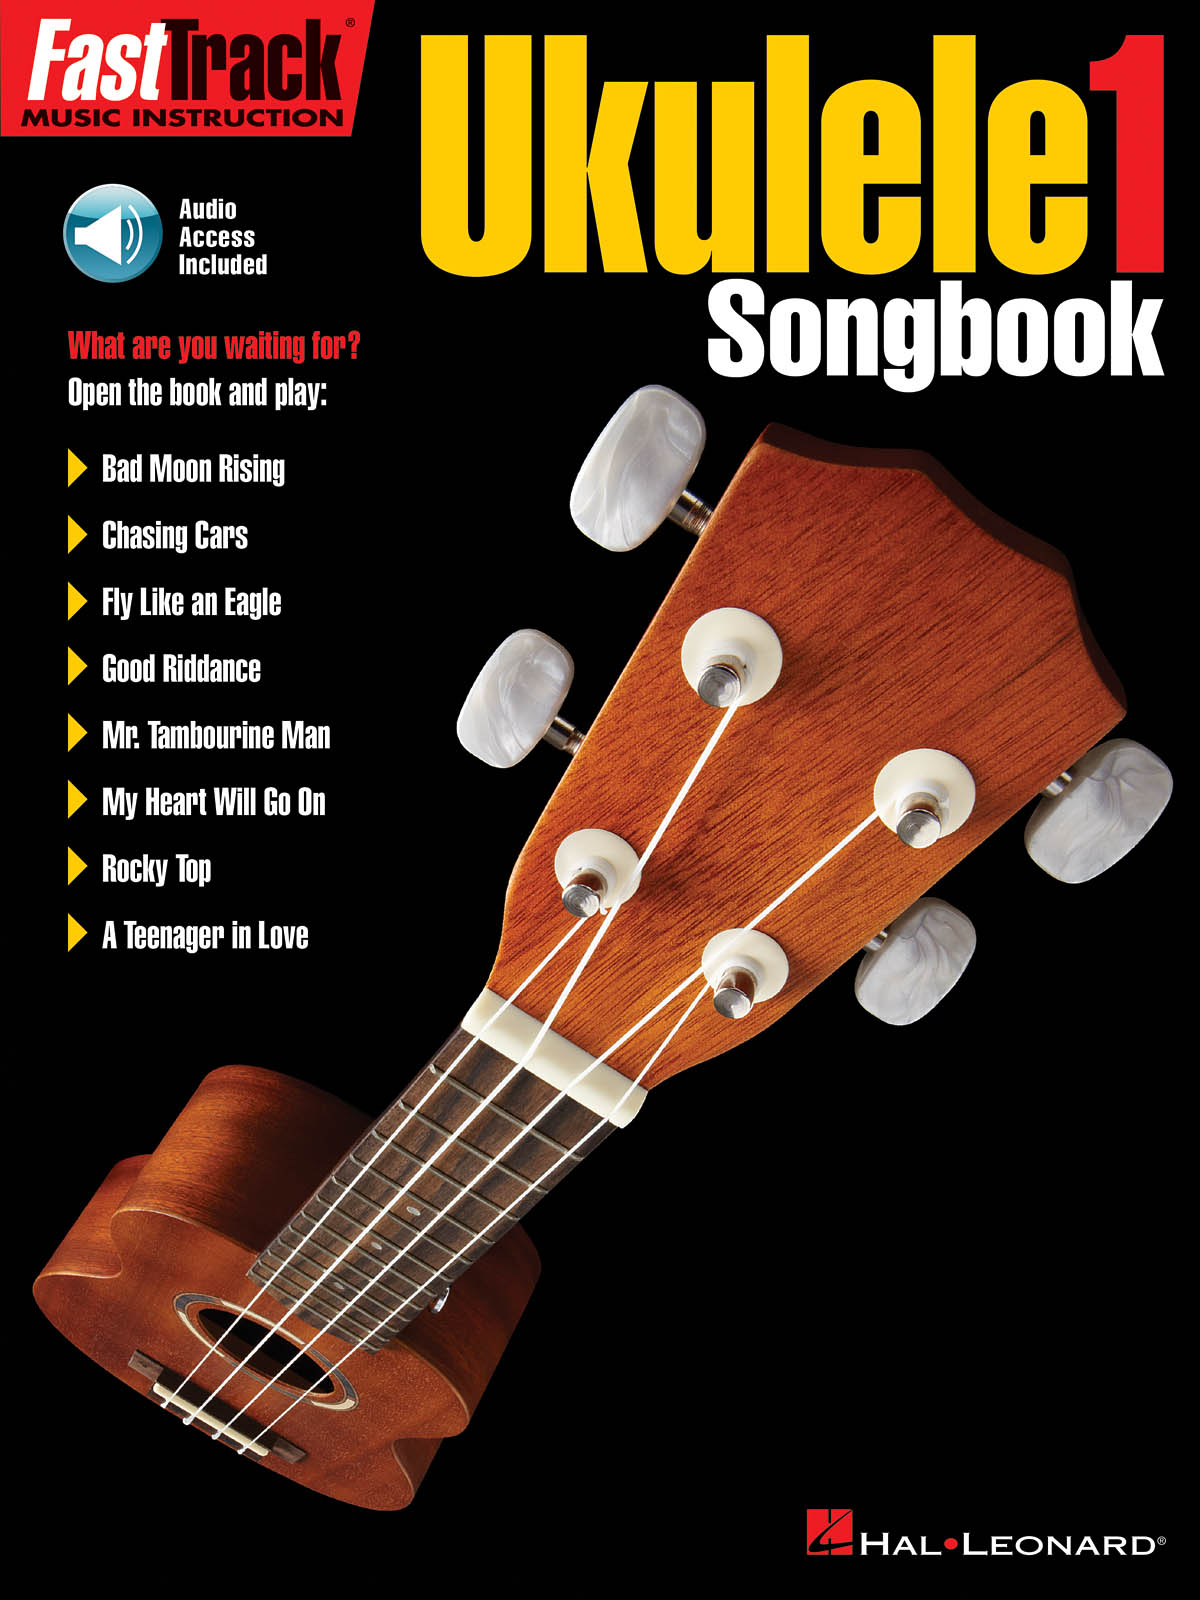 FastTrack Ukulele Songbook: Level 1: Ukulele Solo: Instrumental Tutor